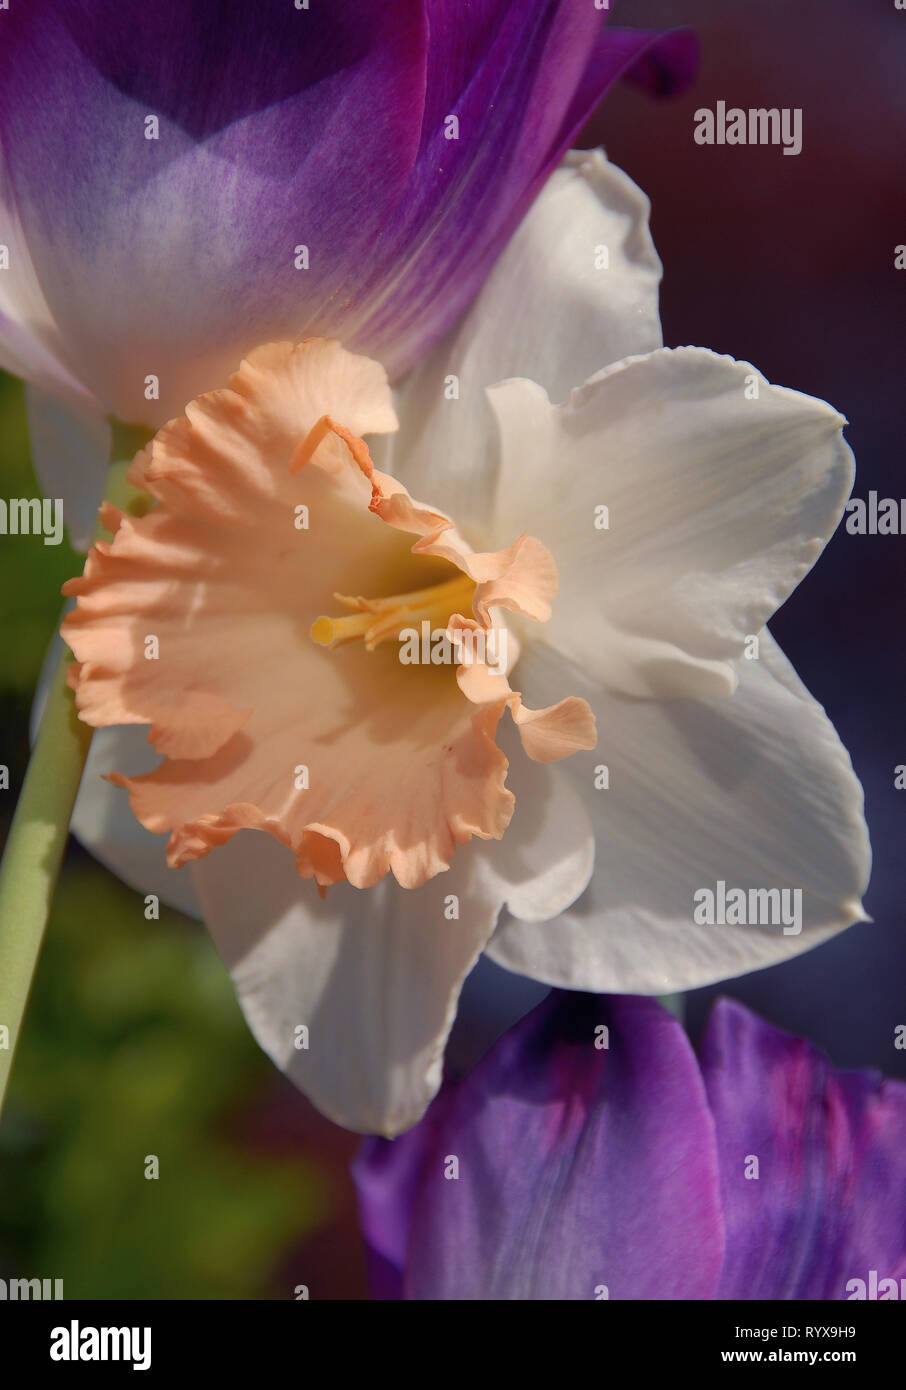 Narcissus 'Mon Cherie' overlapping white perianth segments and soft peachy pink, flared cups is effective with purple pink tulip This bulbous perennia - Stock Image